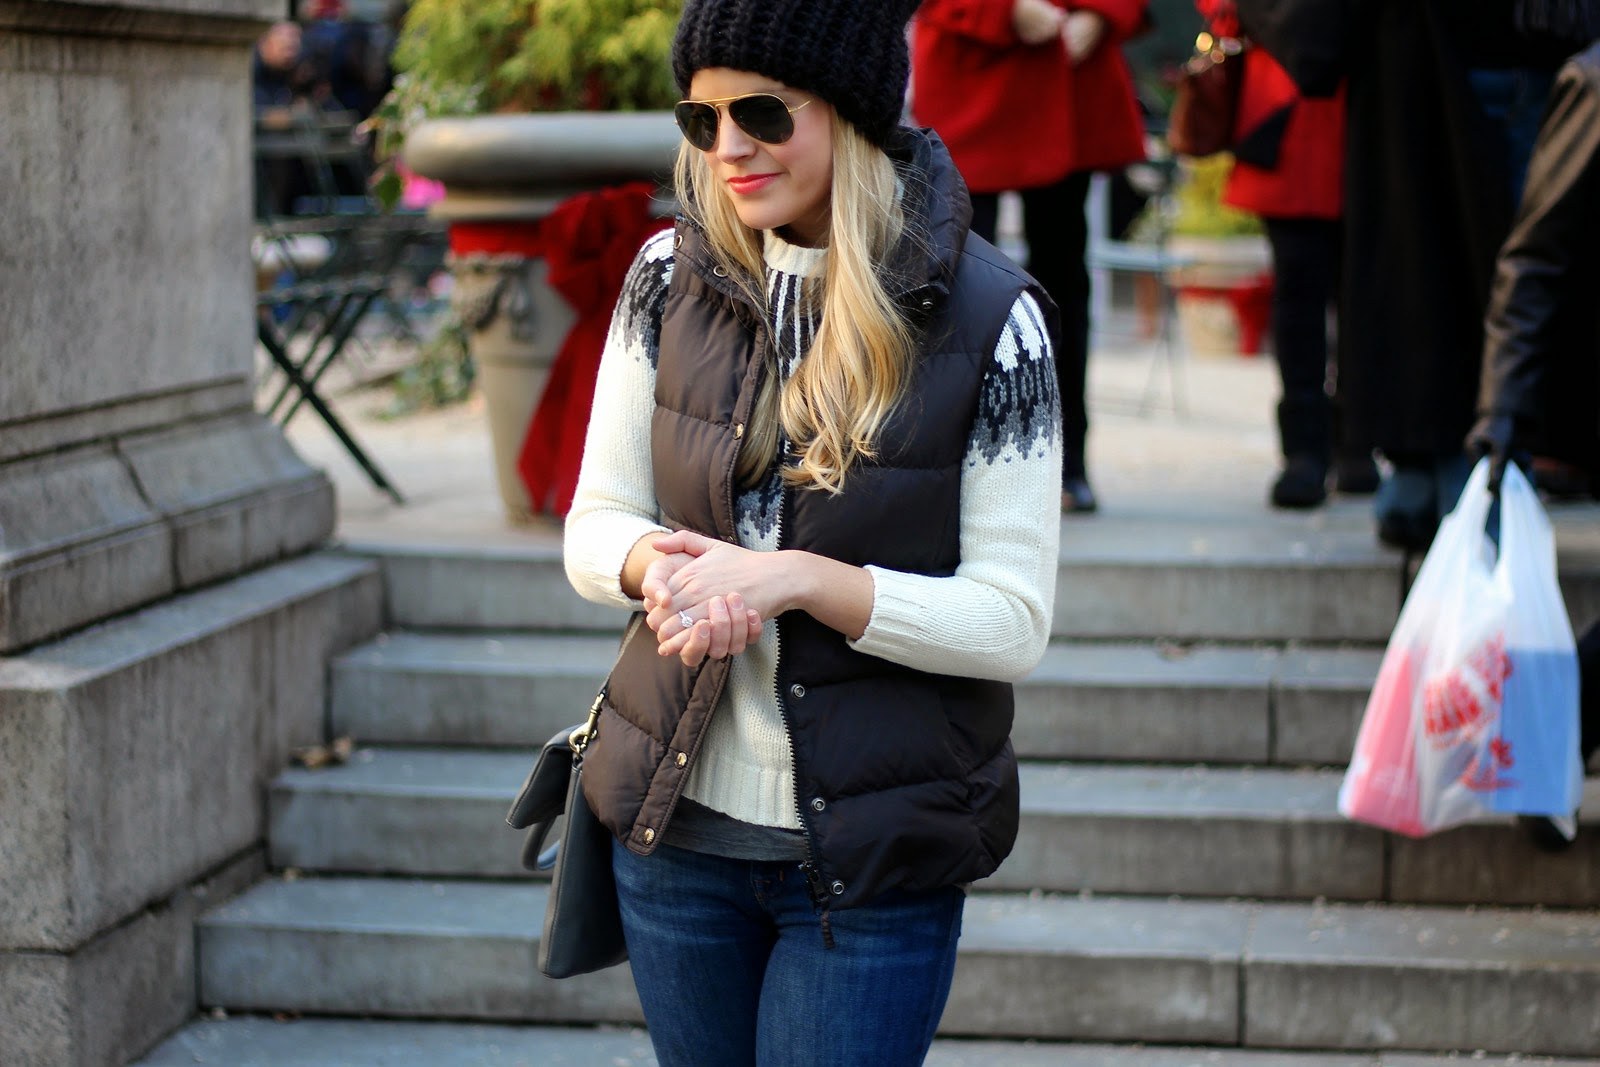 t park nyc, holiday shopping, christmas tree, puffer vest, fair isle sweater, over the knee boots